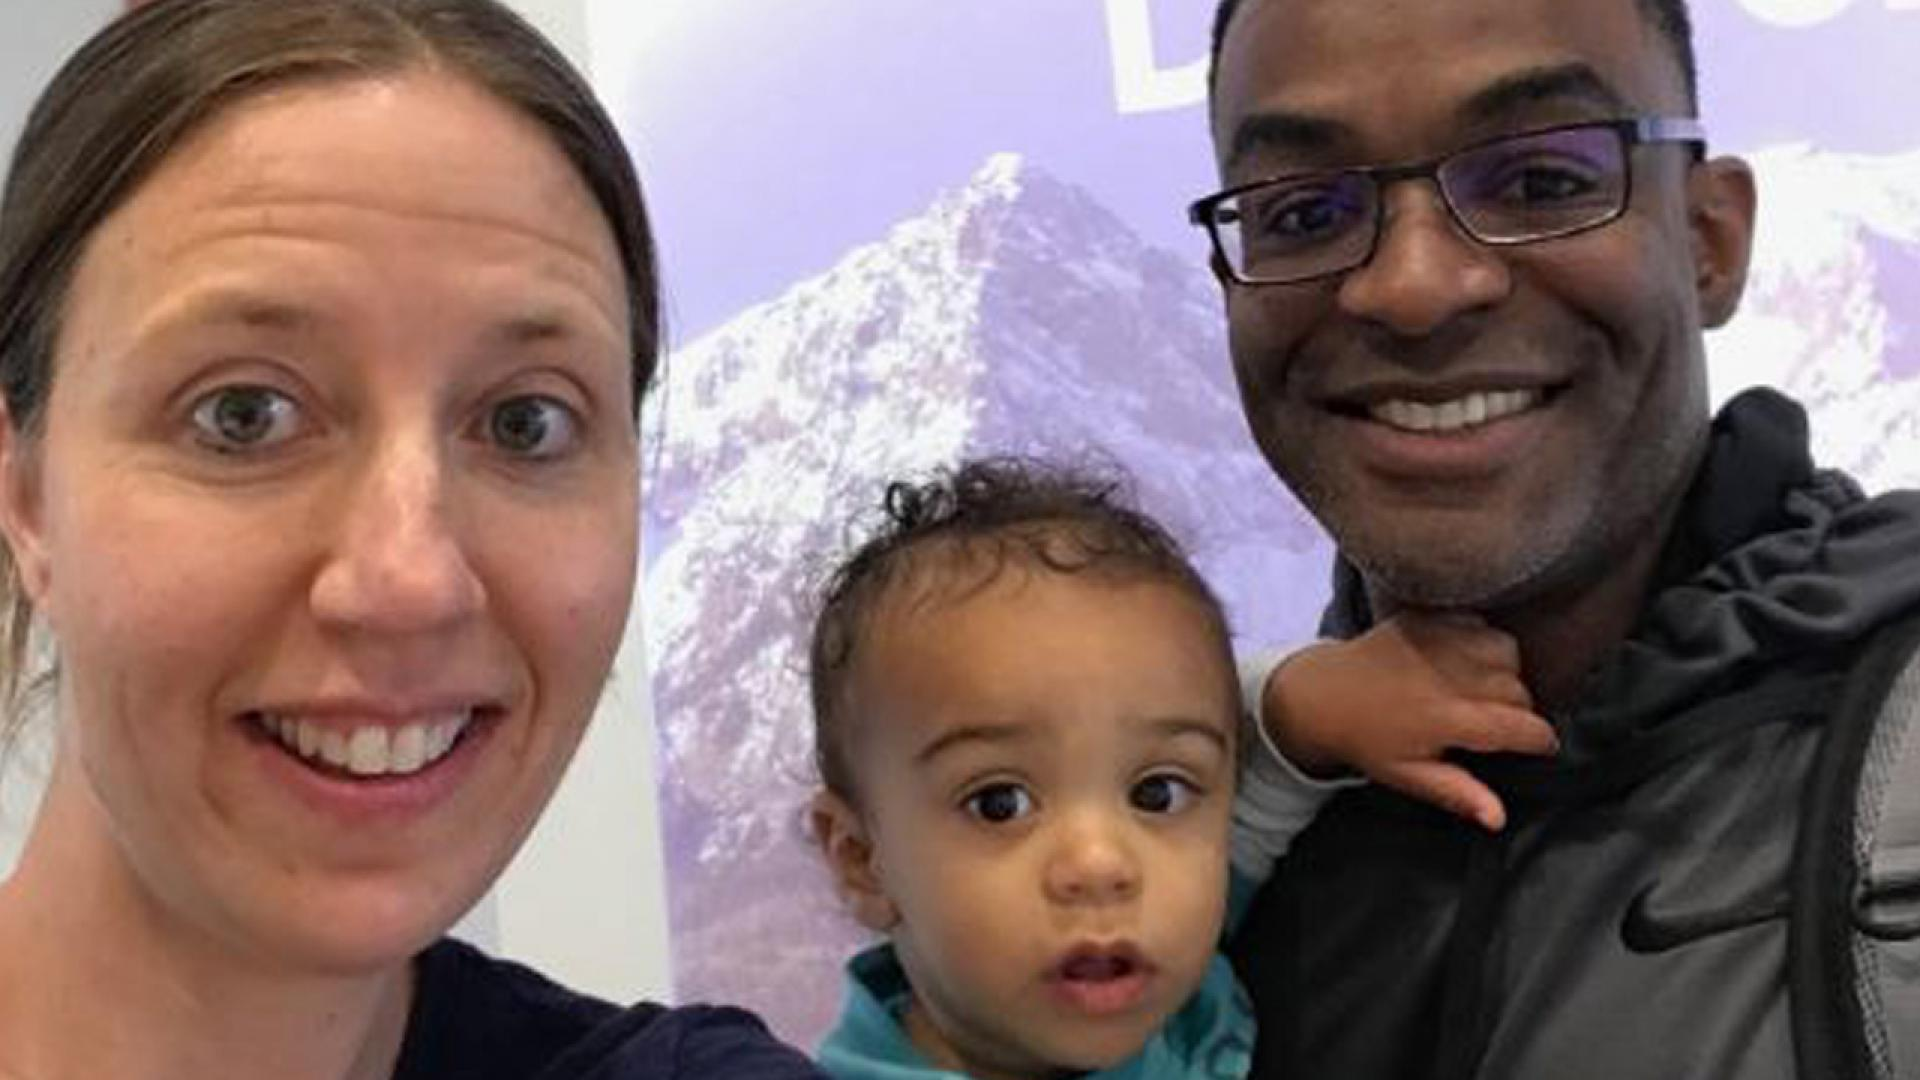 Lindsay Gottlieb, her baby and her husband.